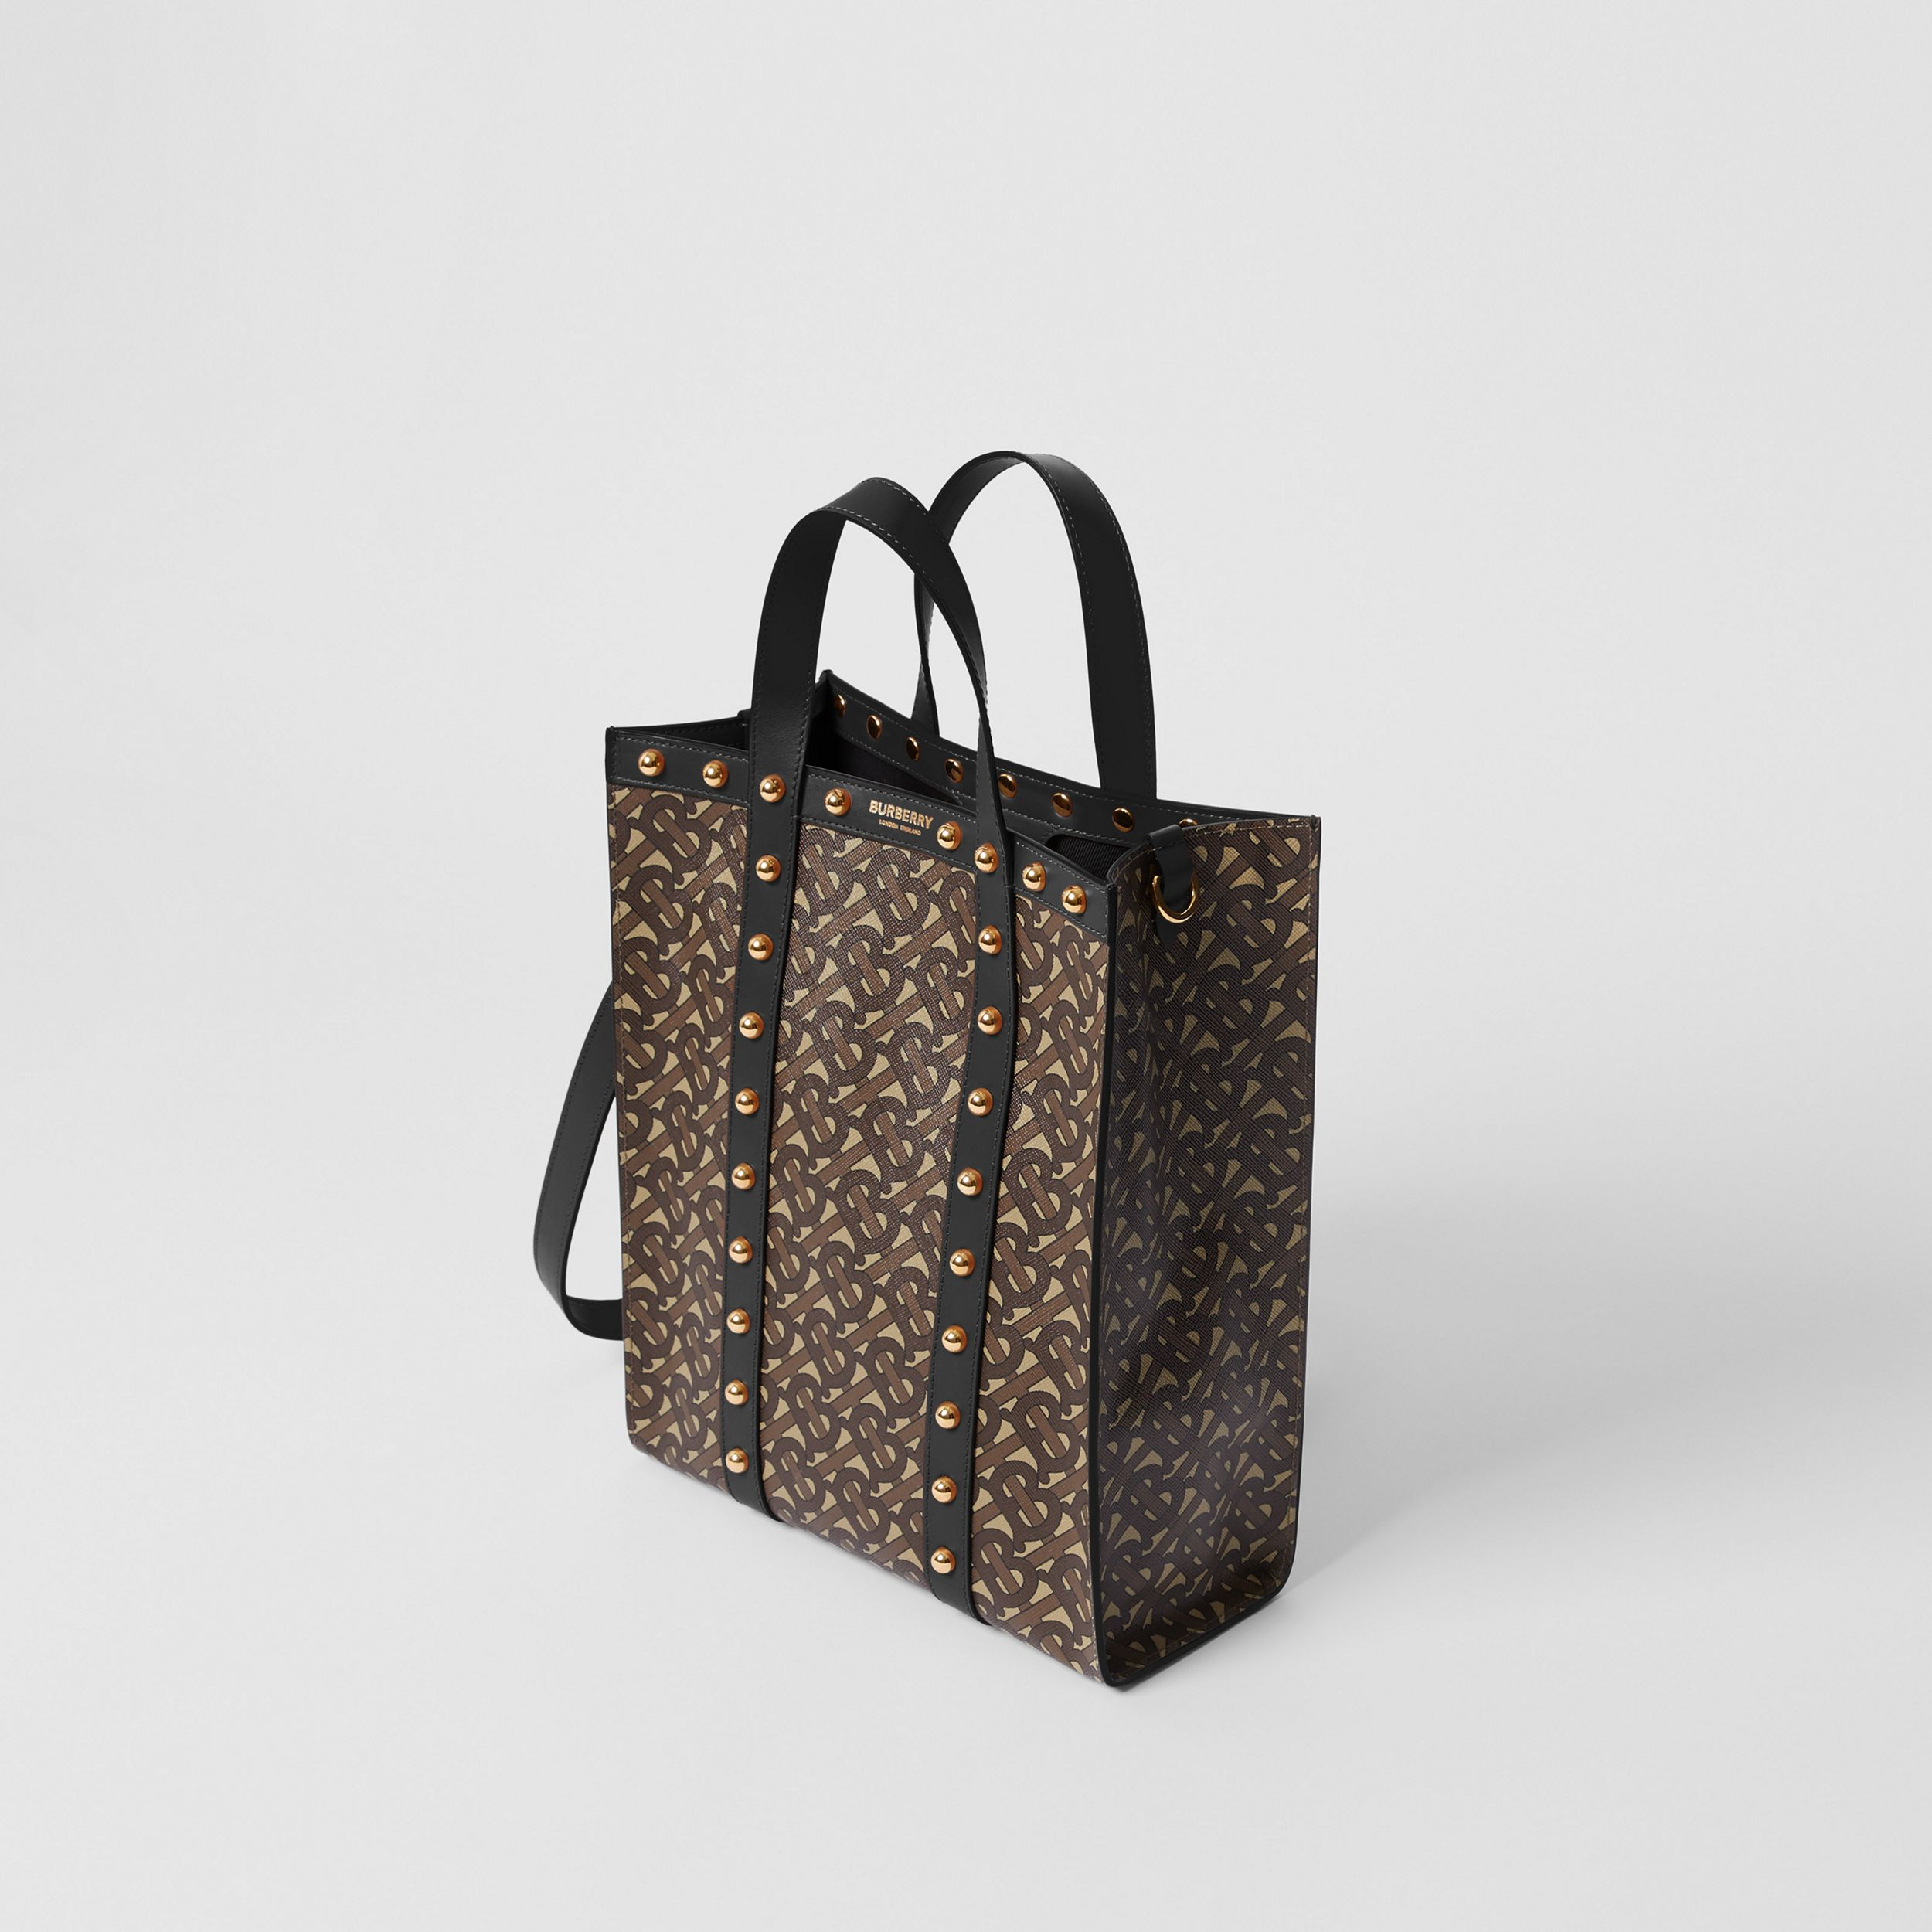 Small Monogram Print E-canvas Portrait Tote Bag in Black - Women | Burberry - 4